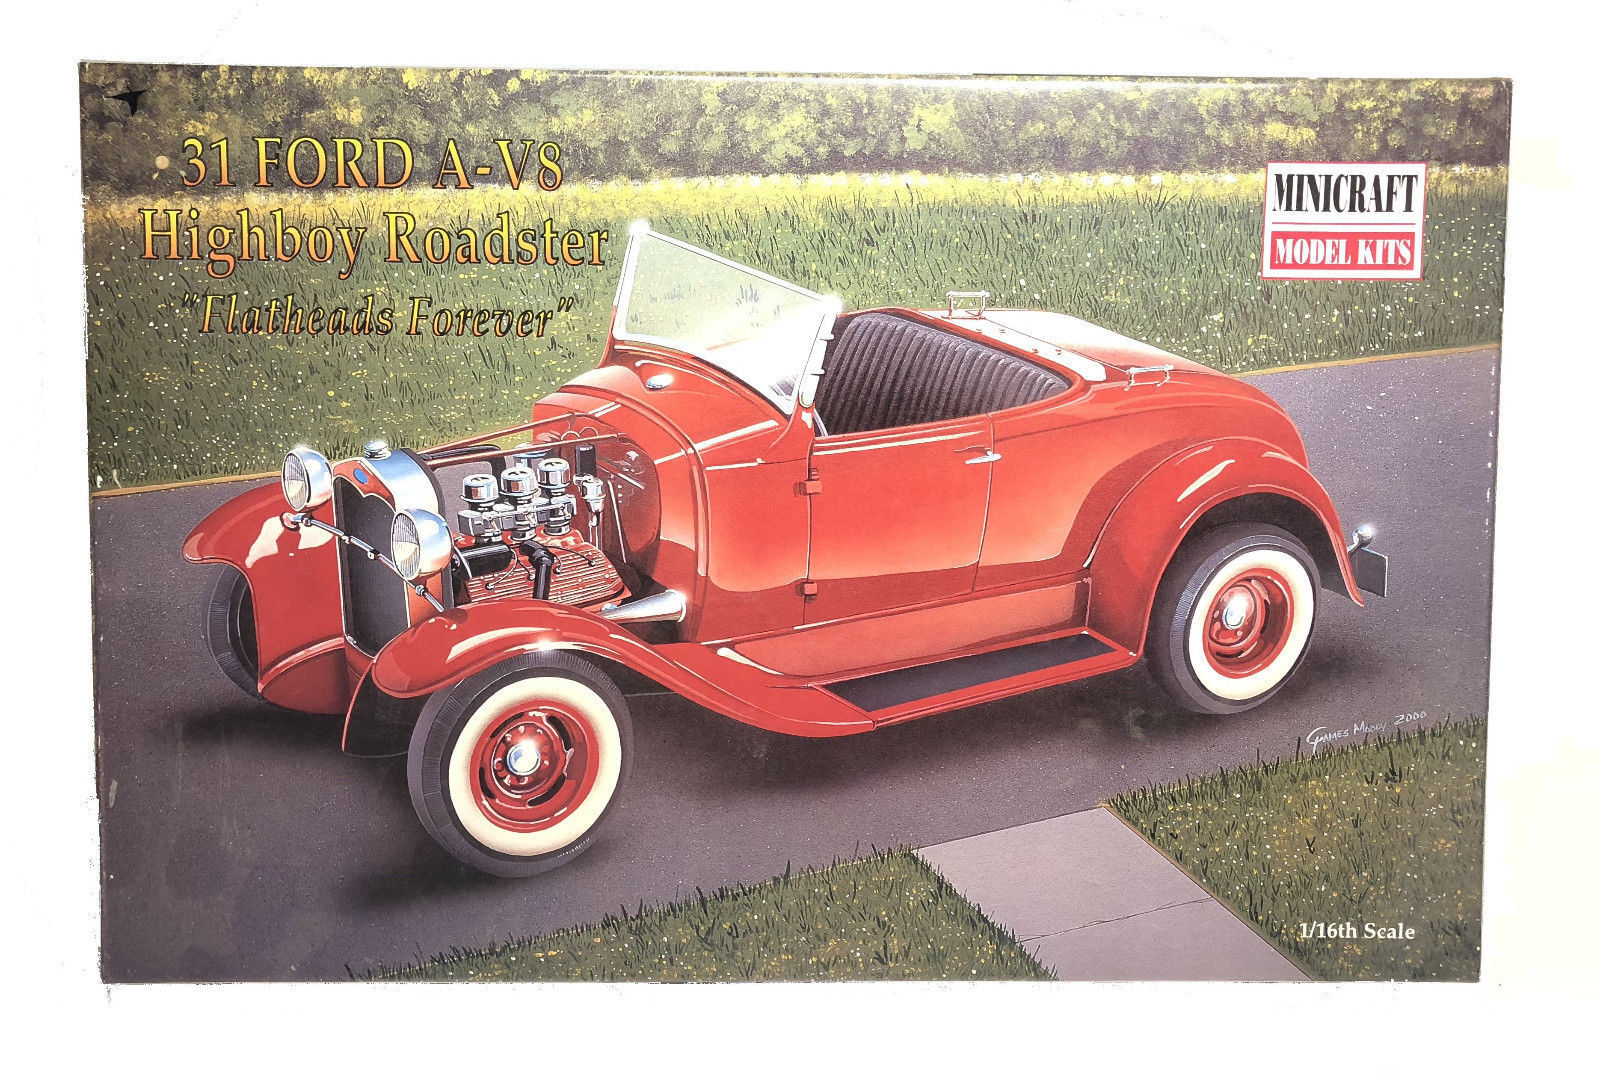 MINICRAFT 1 16 KIT AUTO FORD A V8 HIGHBOY ROADSTER FLATHEADS FOREVER 1931  11222